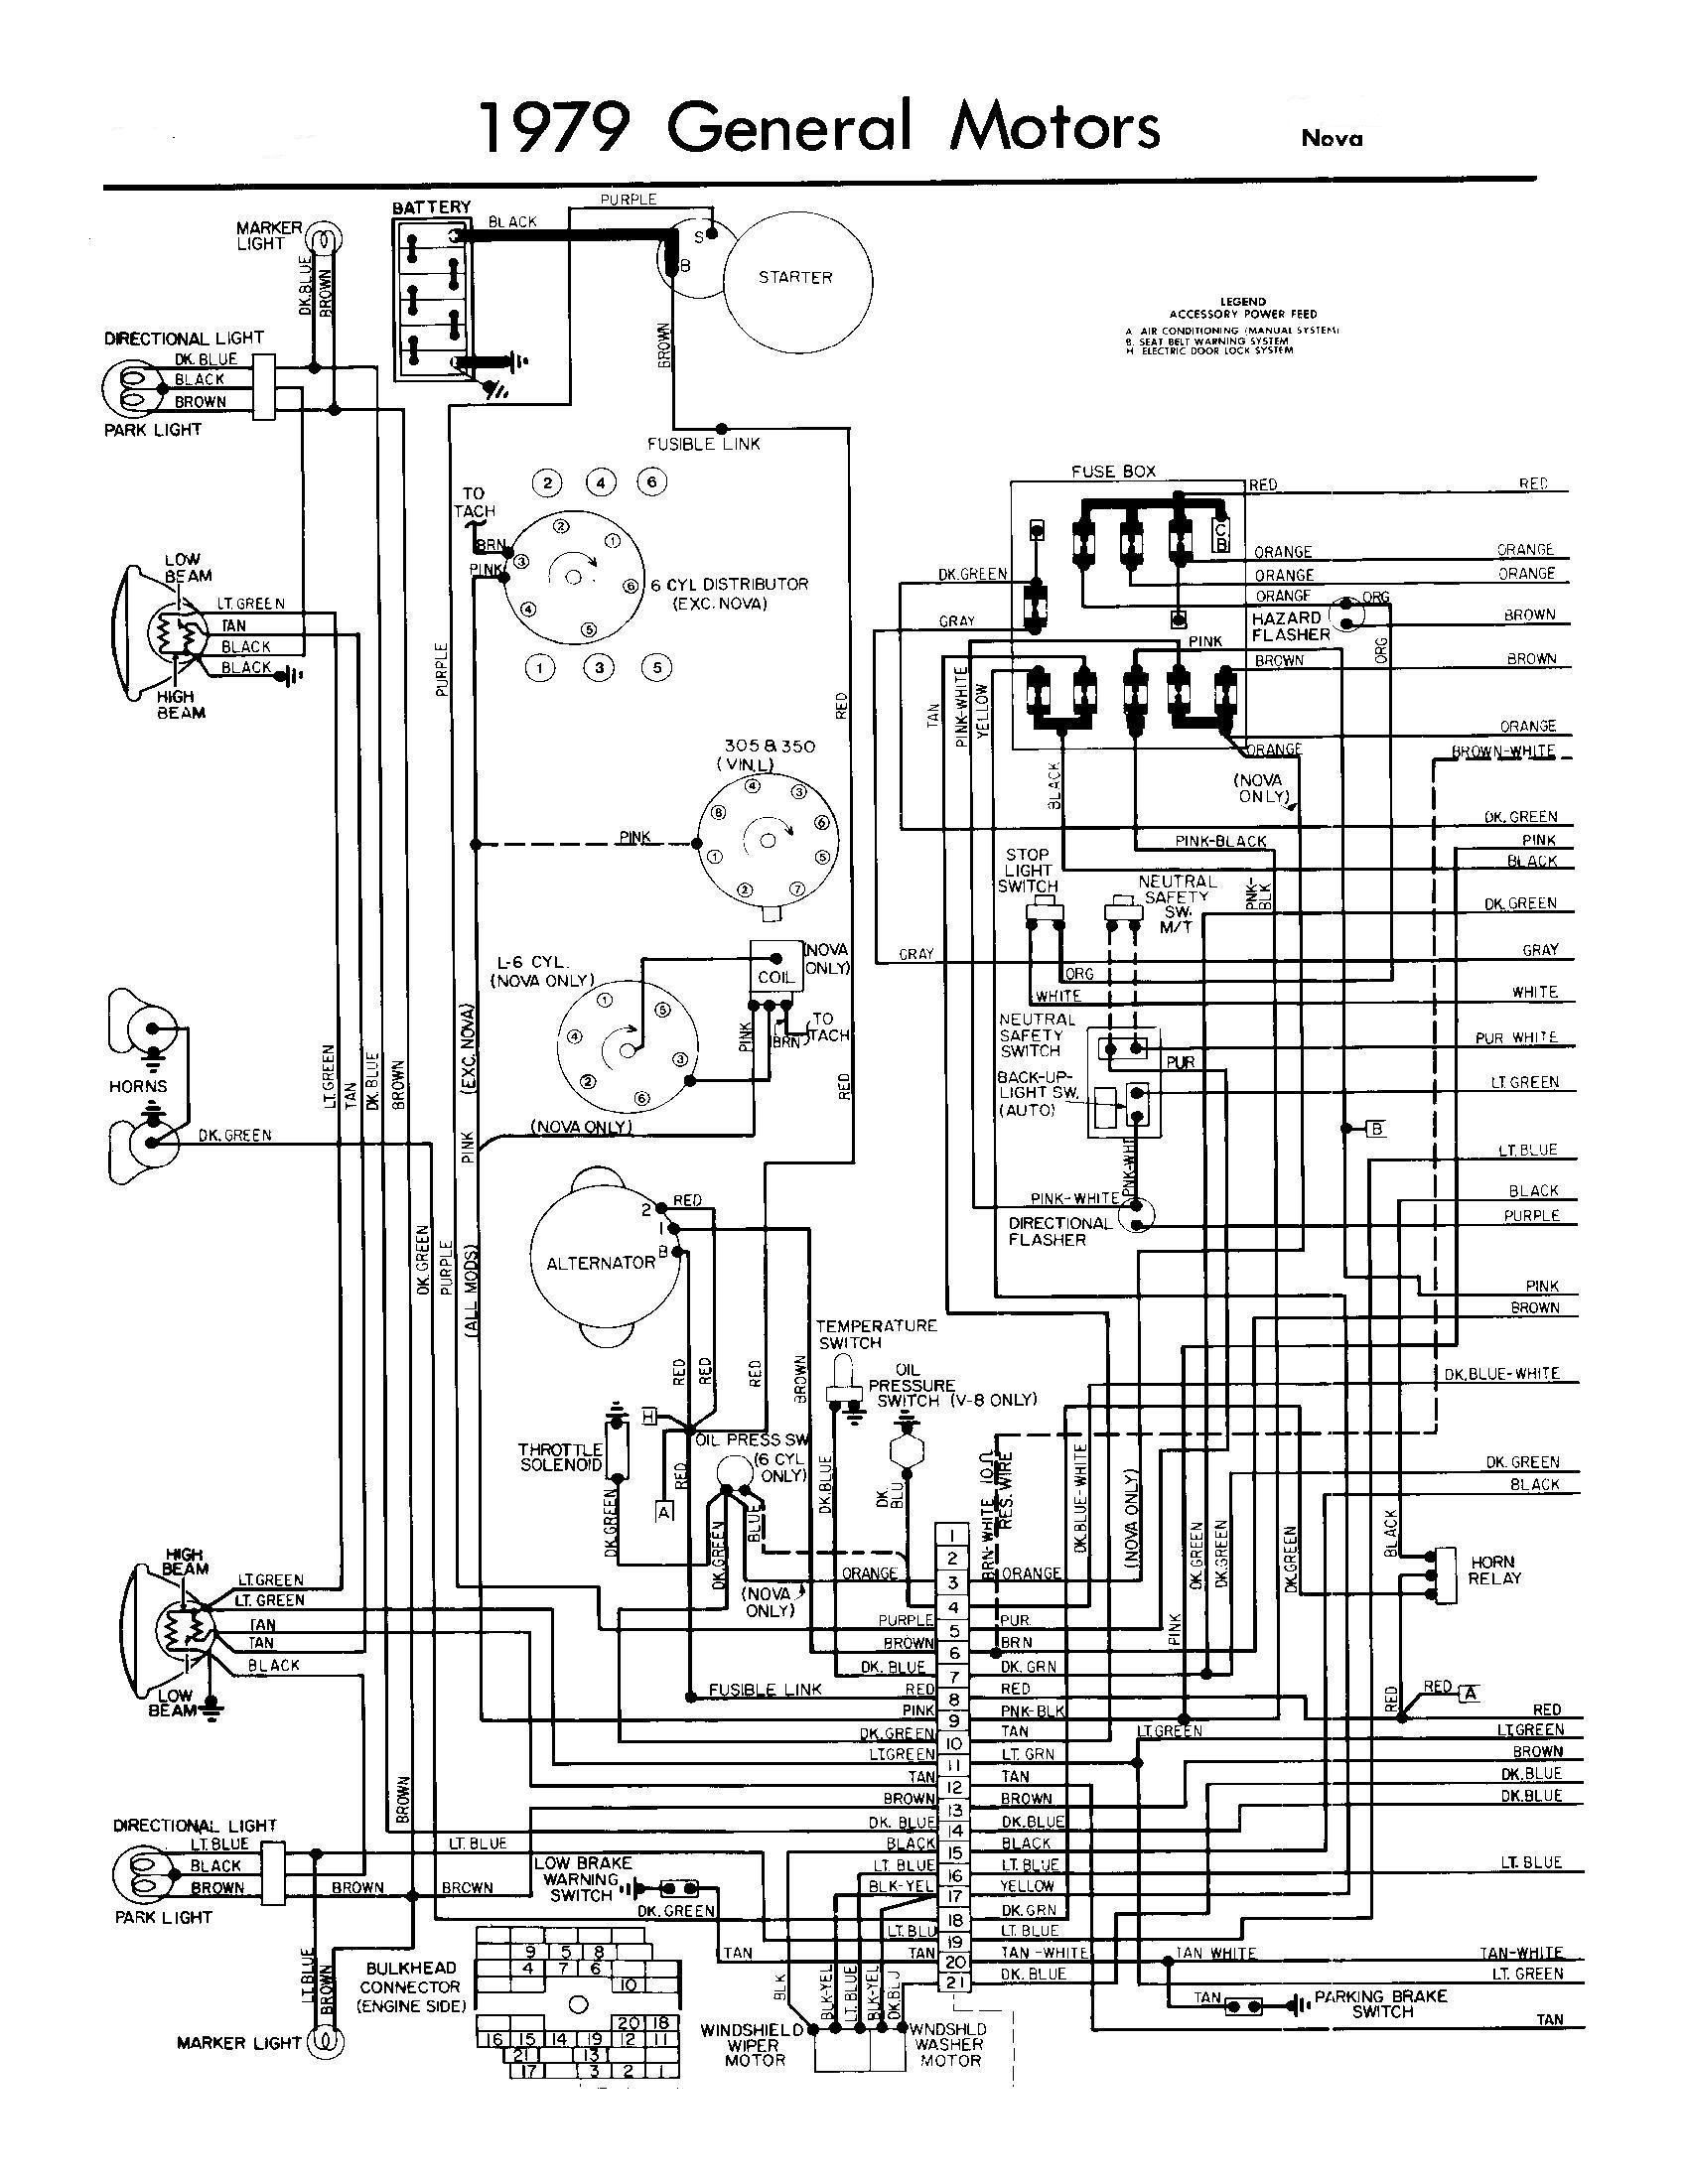 1966 Chevy Suburban Wiring Diagram - DIY Enthusiasts Wiring Diagrams on corvette heat shield diagram, corvette headlight wiring diagram, 350 spark plug wire diagram,